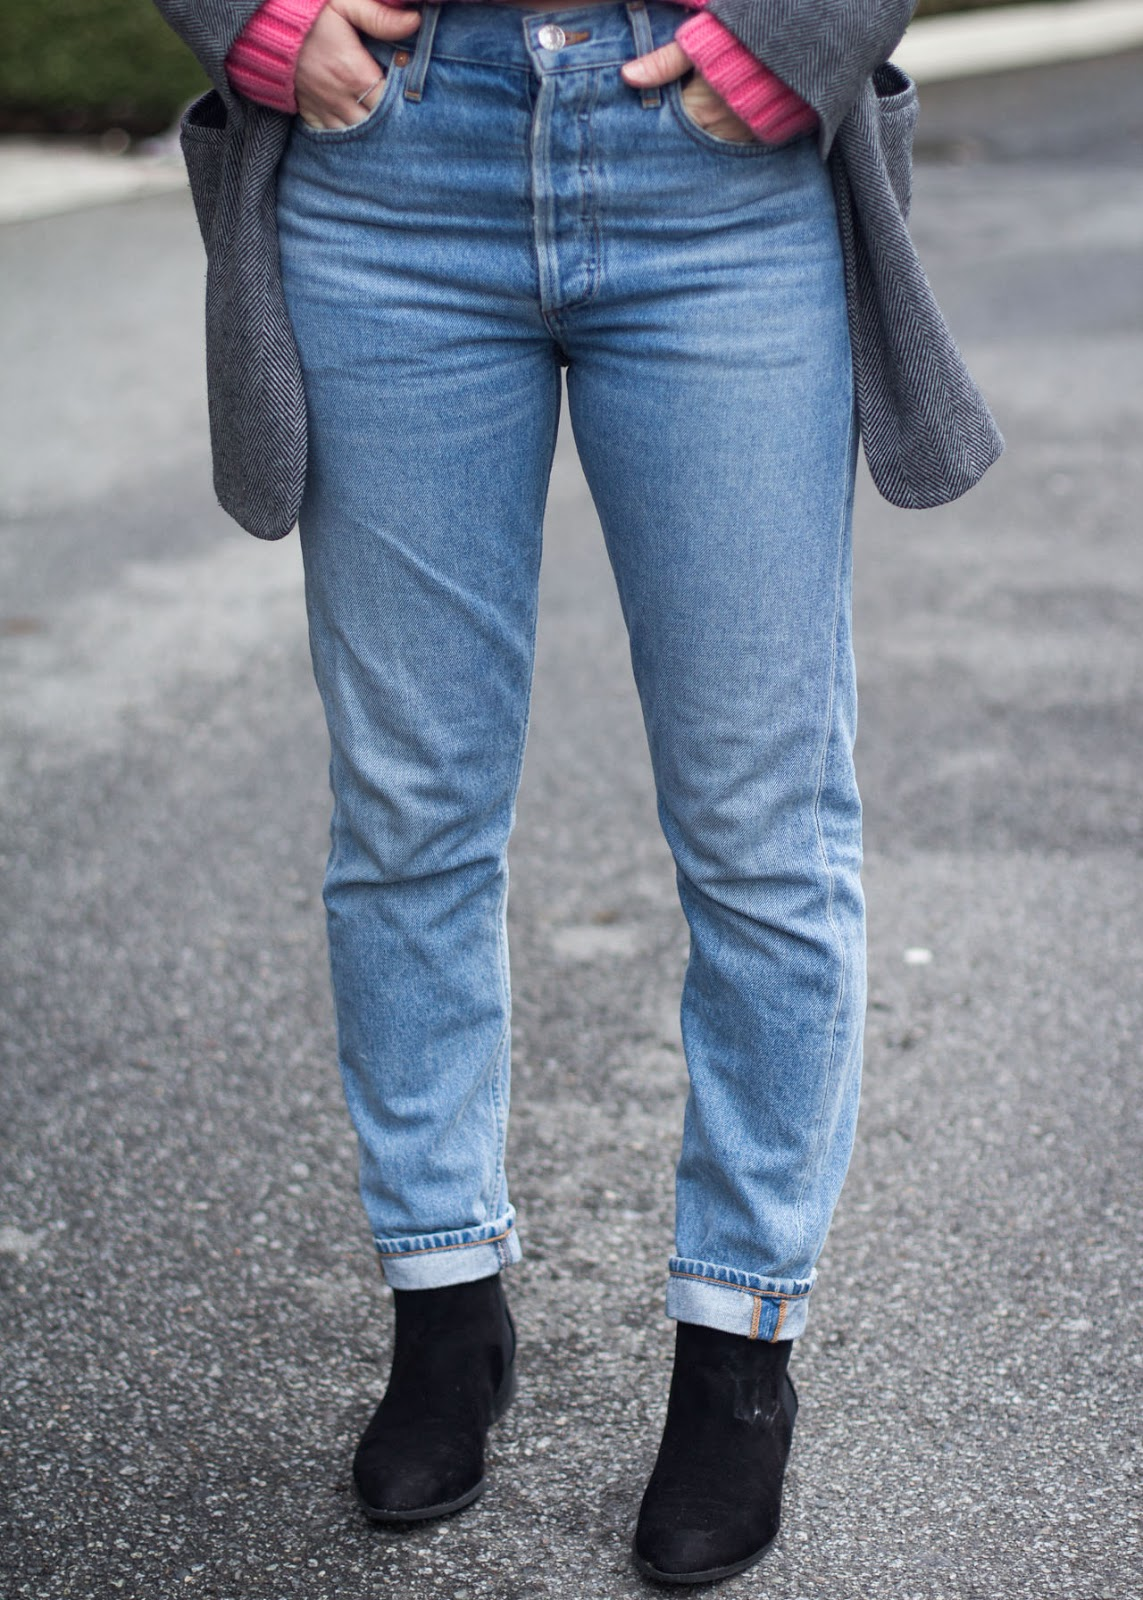 Favorite denim jeans - AGOLDE jamie brooklyn - Vancouver Fashion Blogger